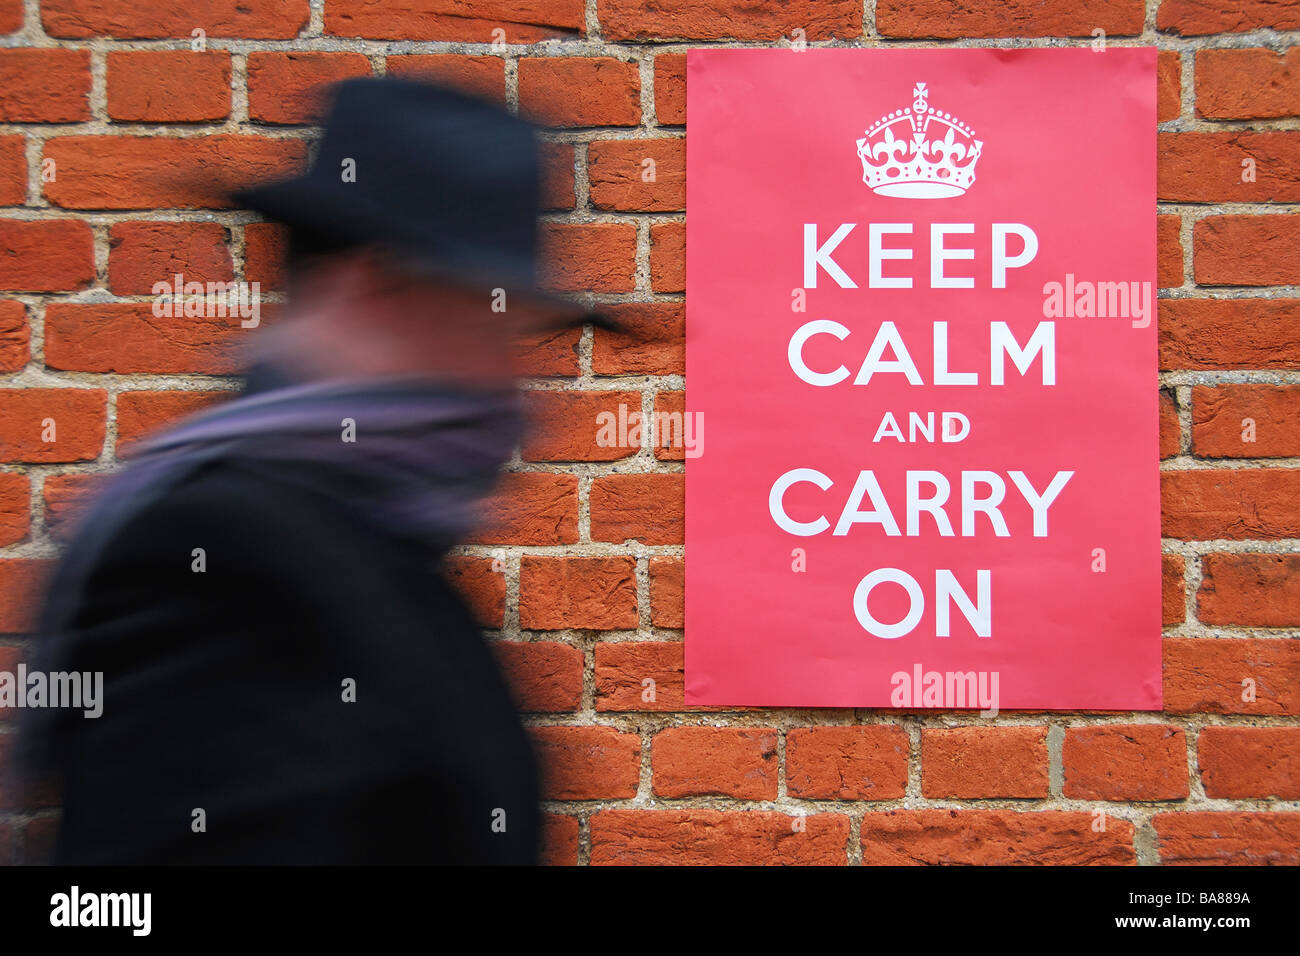 Man walking past a Second World War poster urging people to keep calm and carry on. - Stock Image